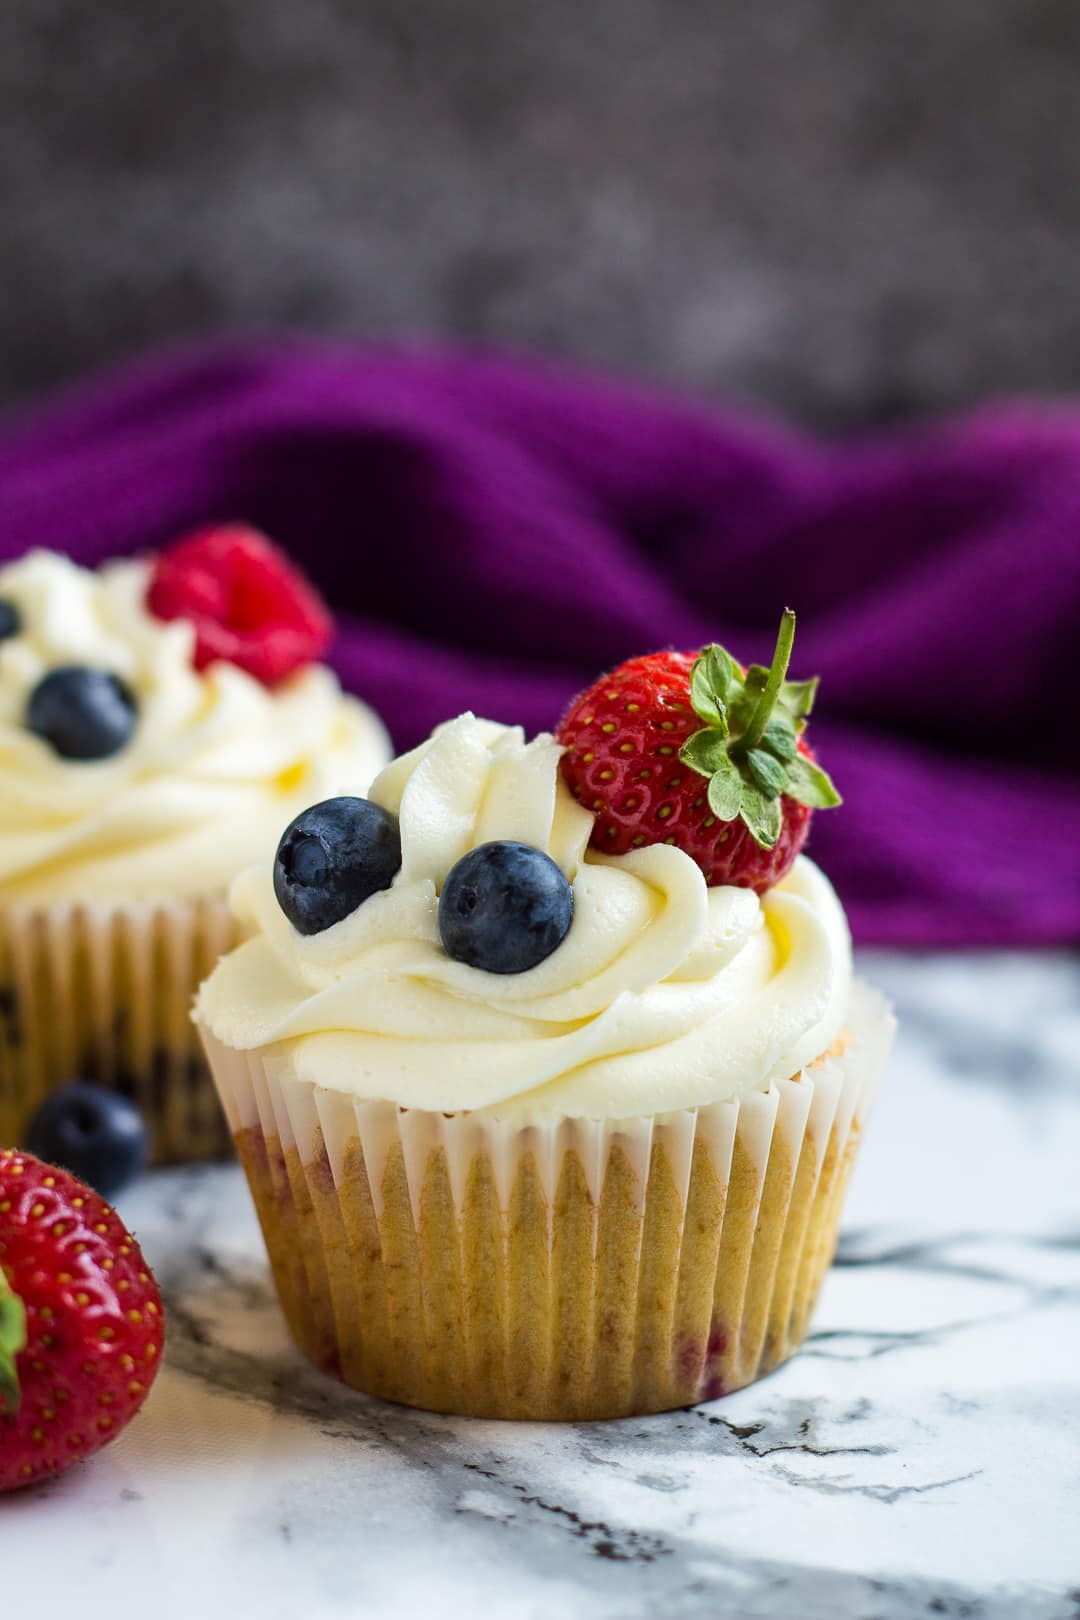 Two frosted cupcakes topped with strawberries and blueberries.